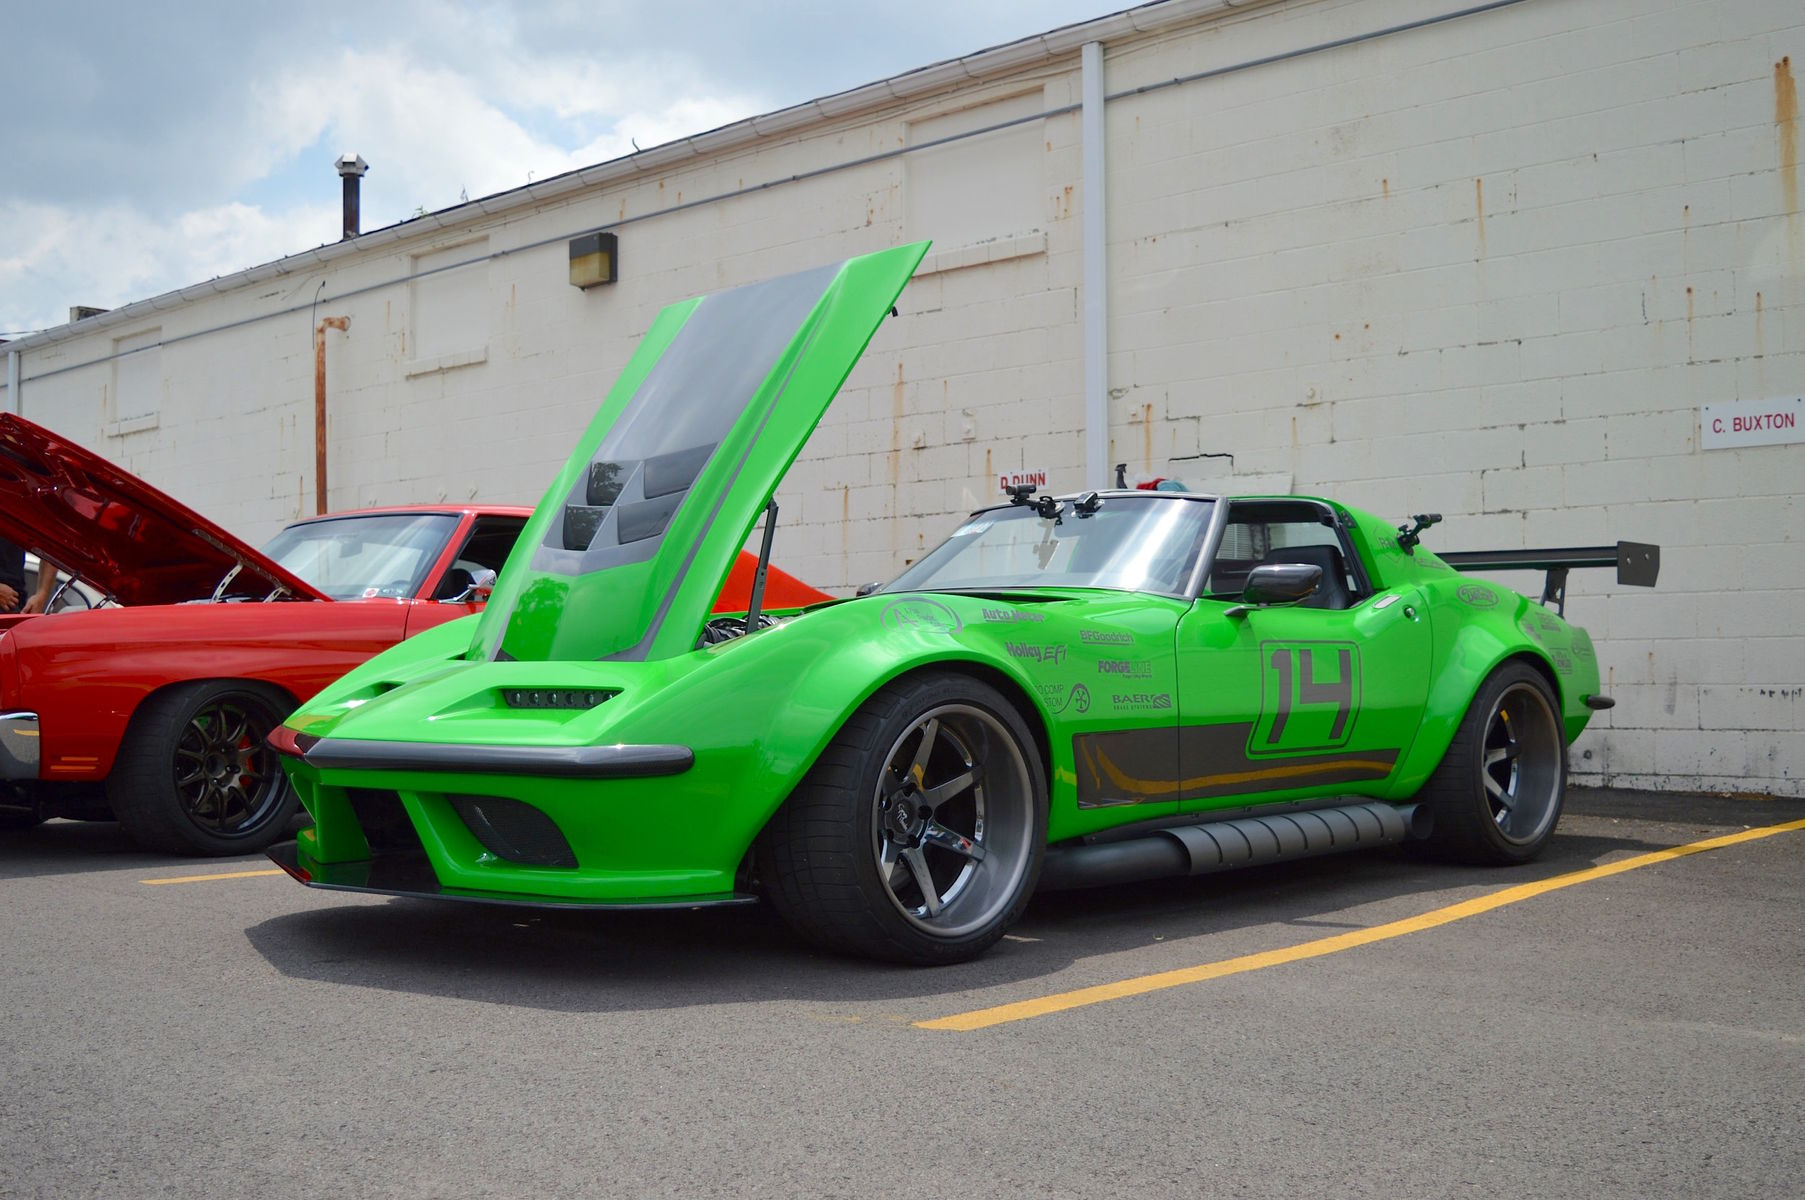 1968 Chevrolet Corvette Stingray | Bob Bertelsen's